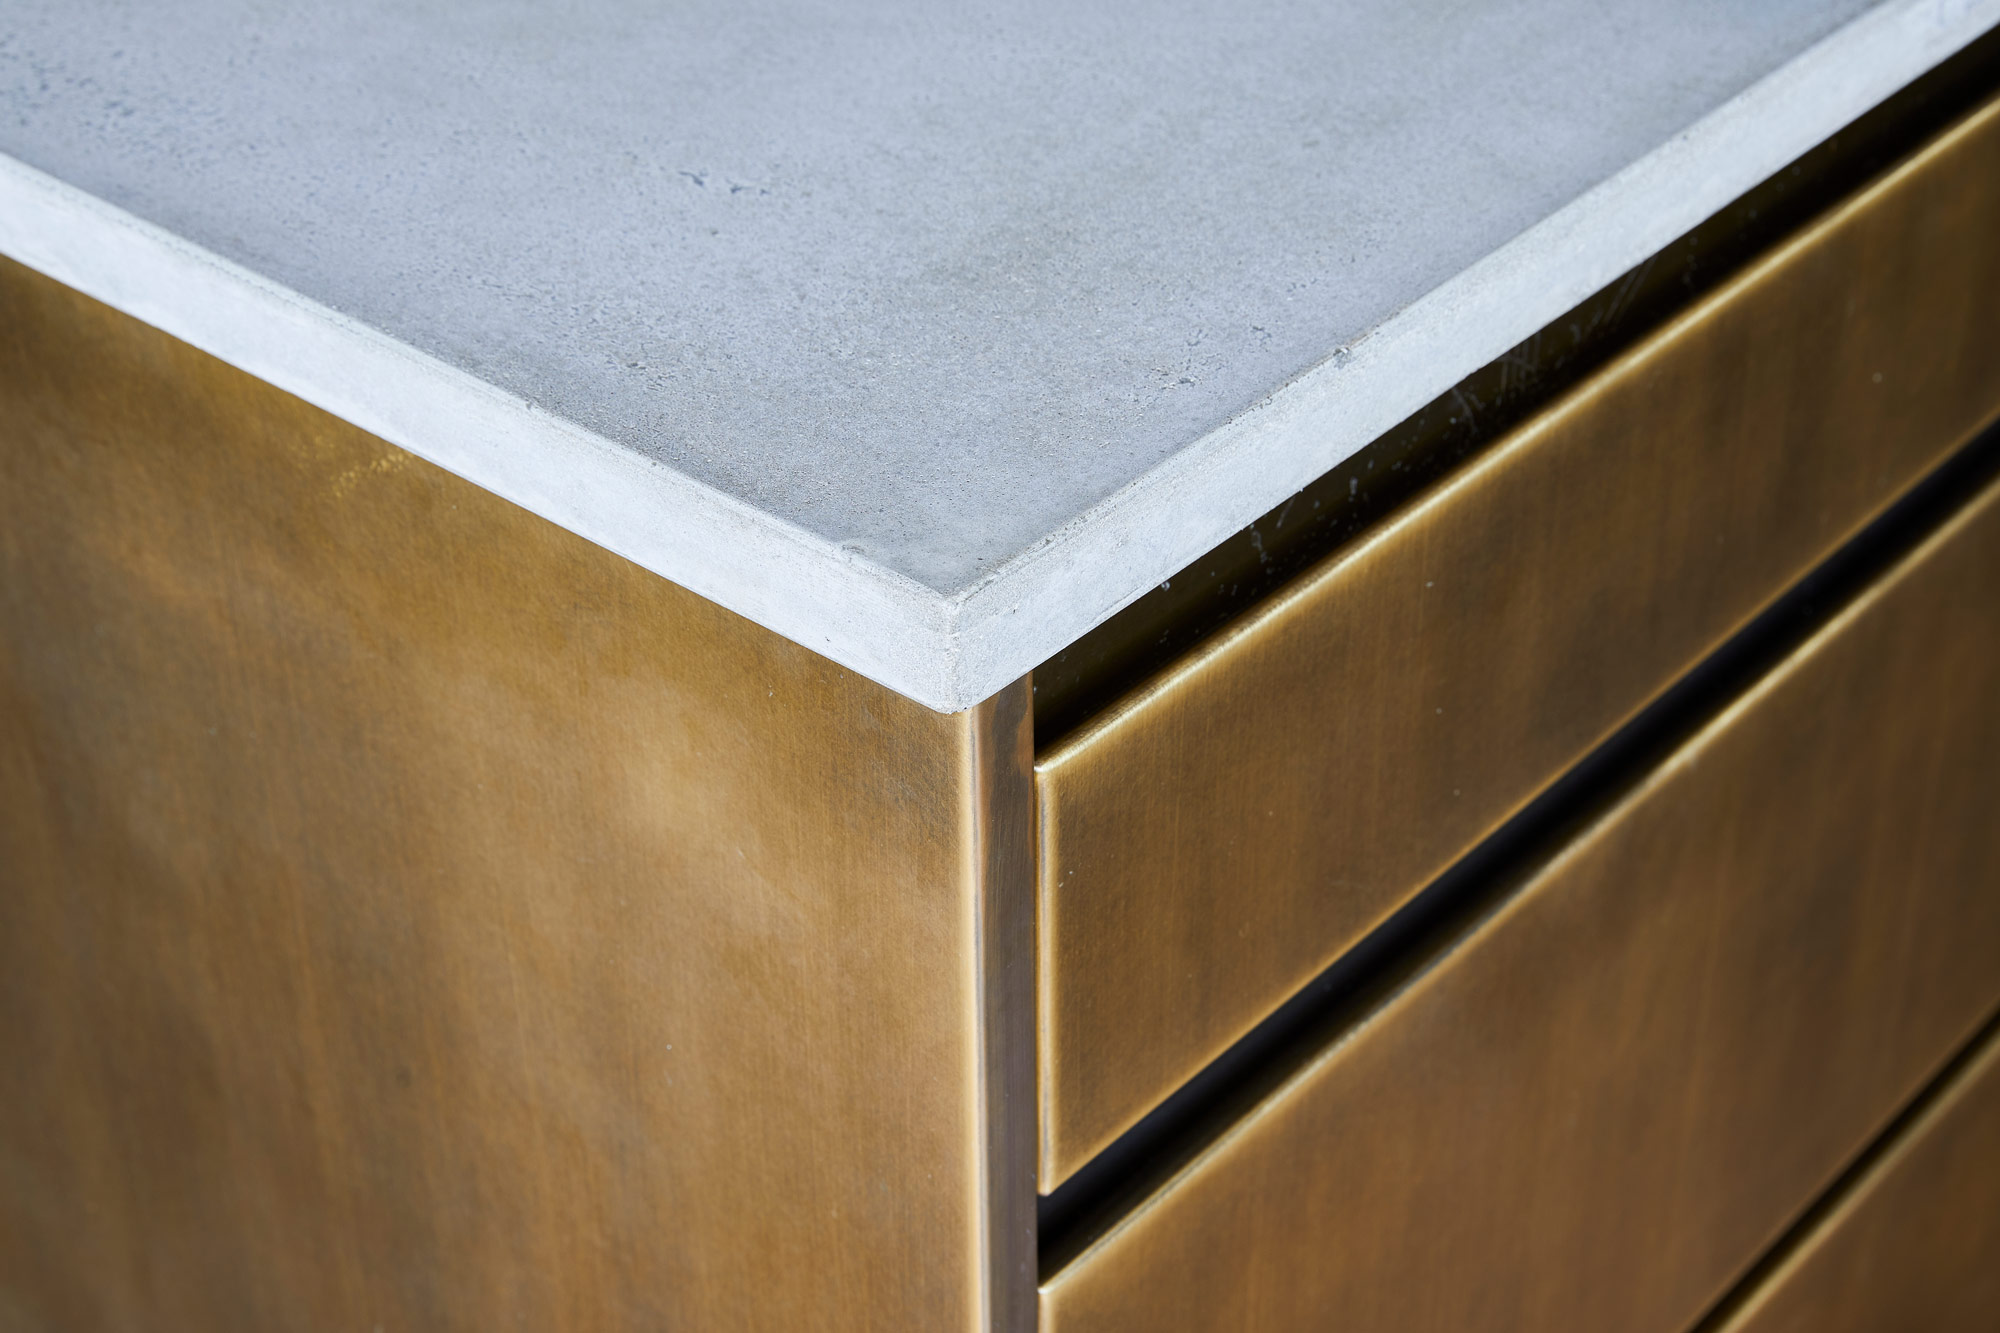 Solid concrete worktop on top of bespoke metal kitchen drawers